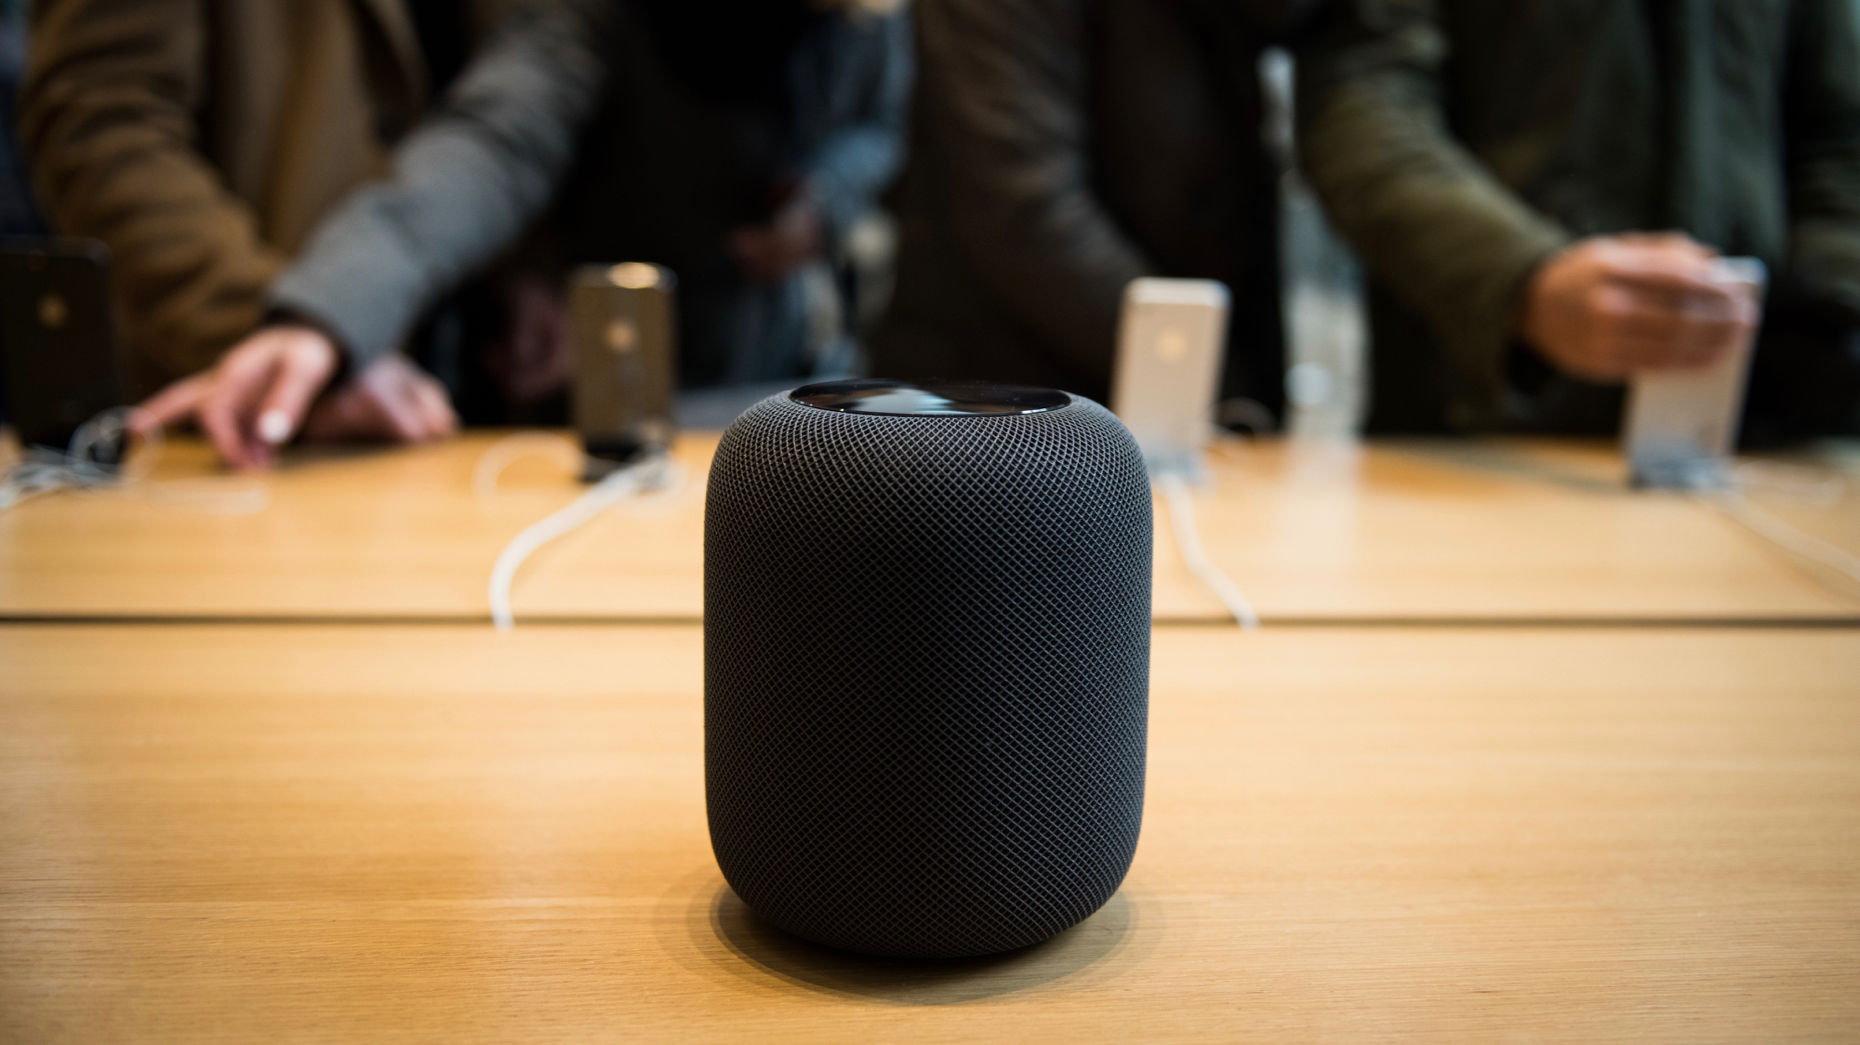 Apple's HomePod features the company's Siri virtual assistant. Photo by Bloomberg